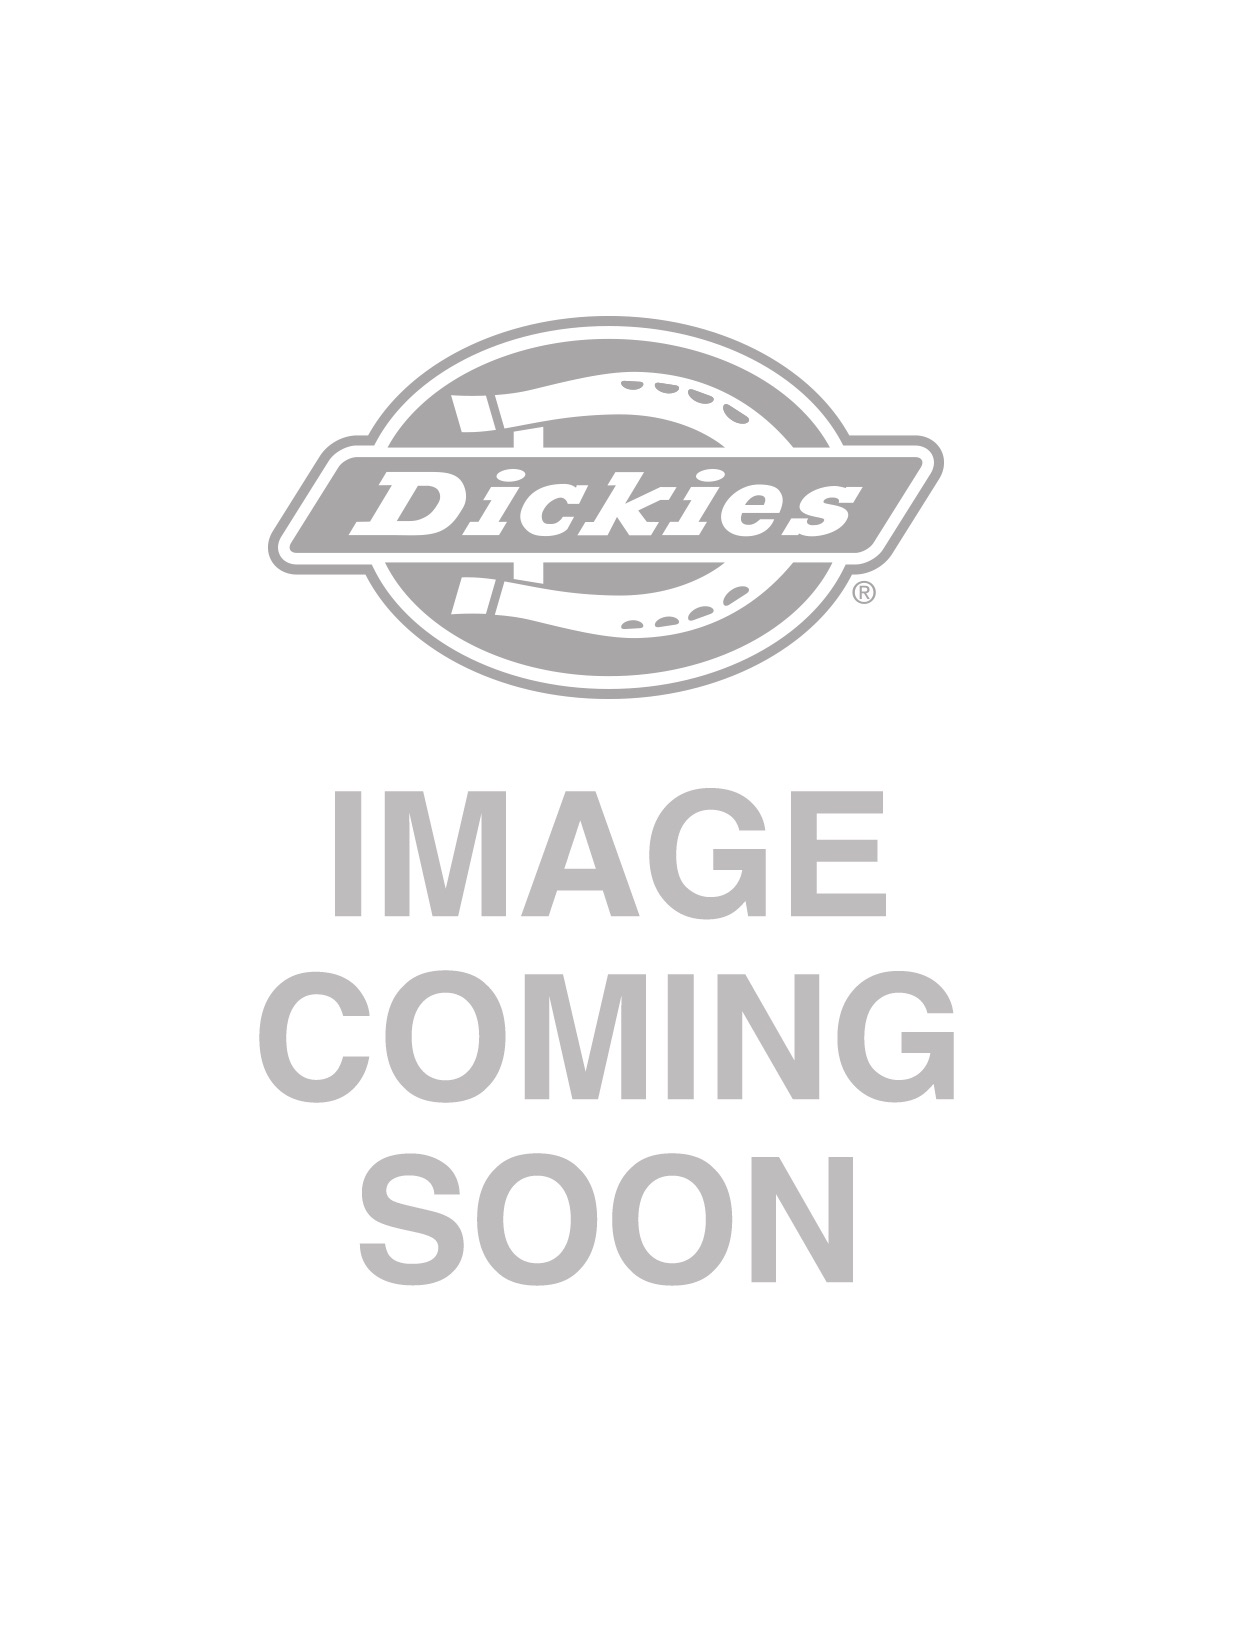 Bay Beige 45 Dickies Bottes Cold Ybgy76f